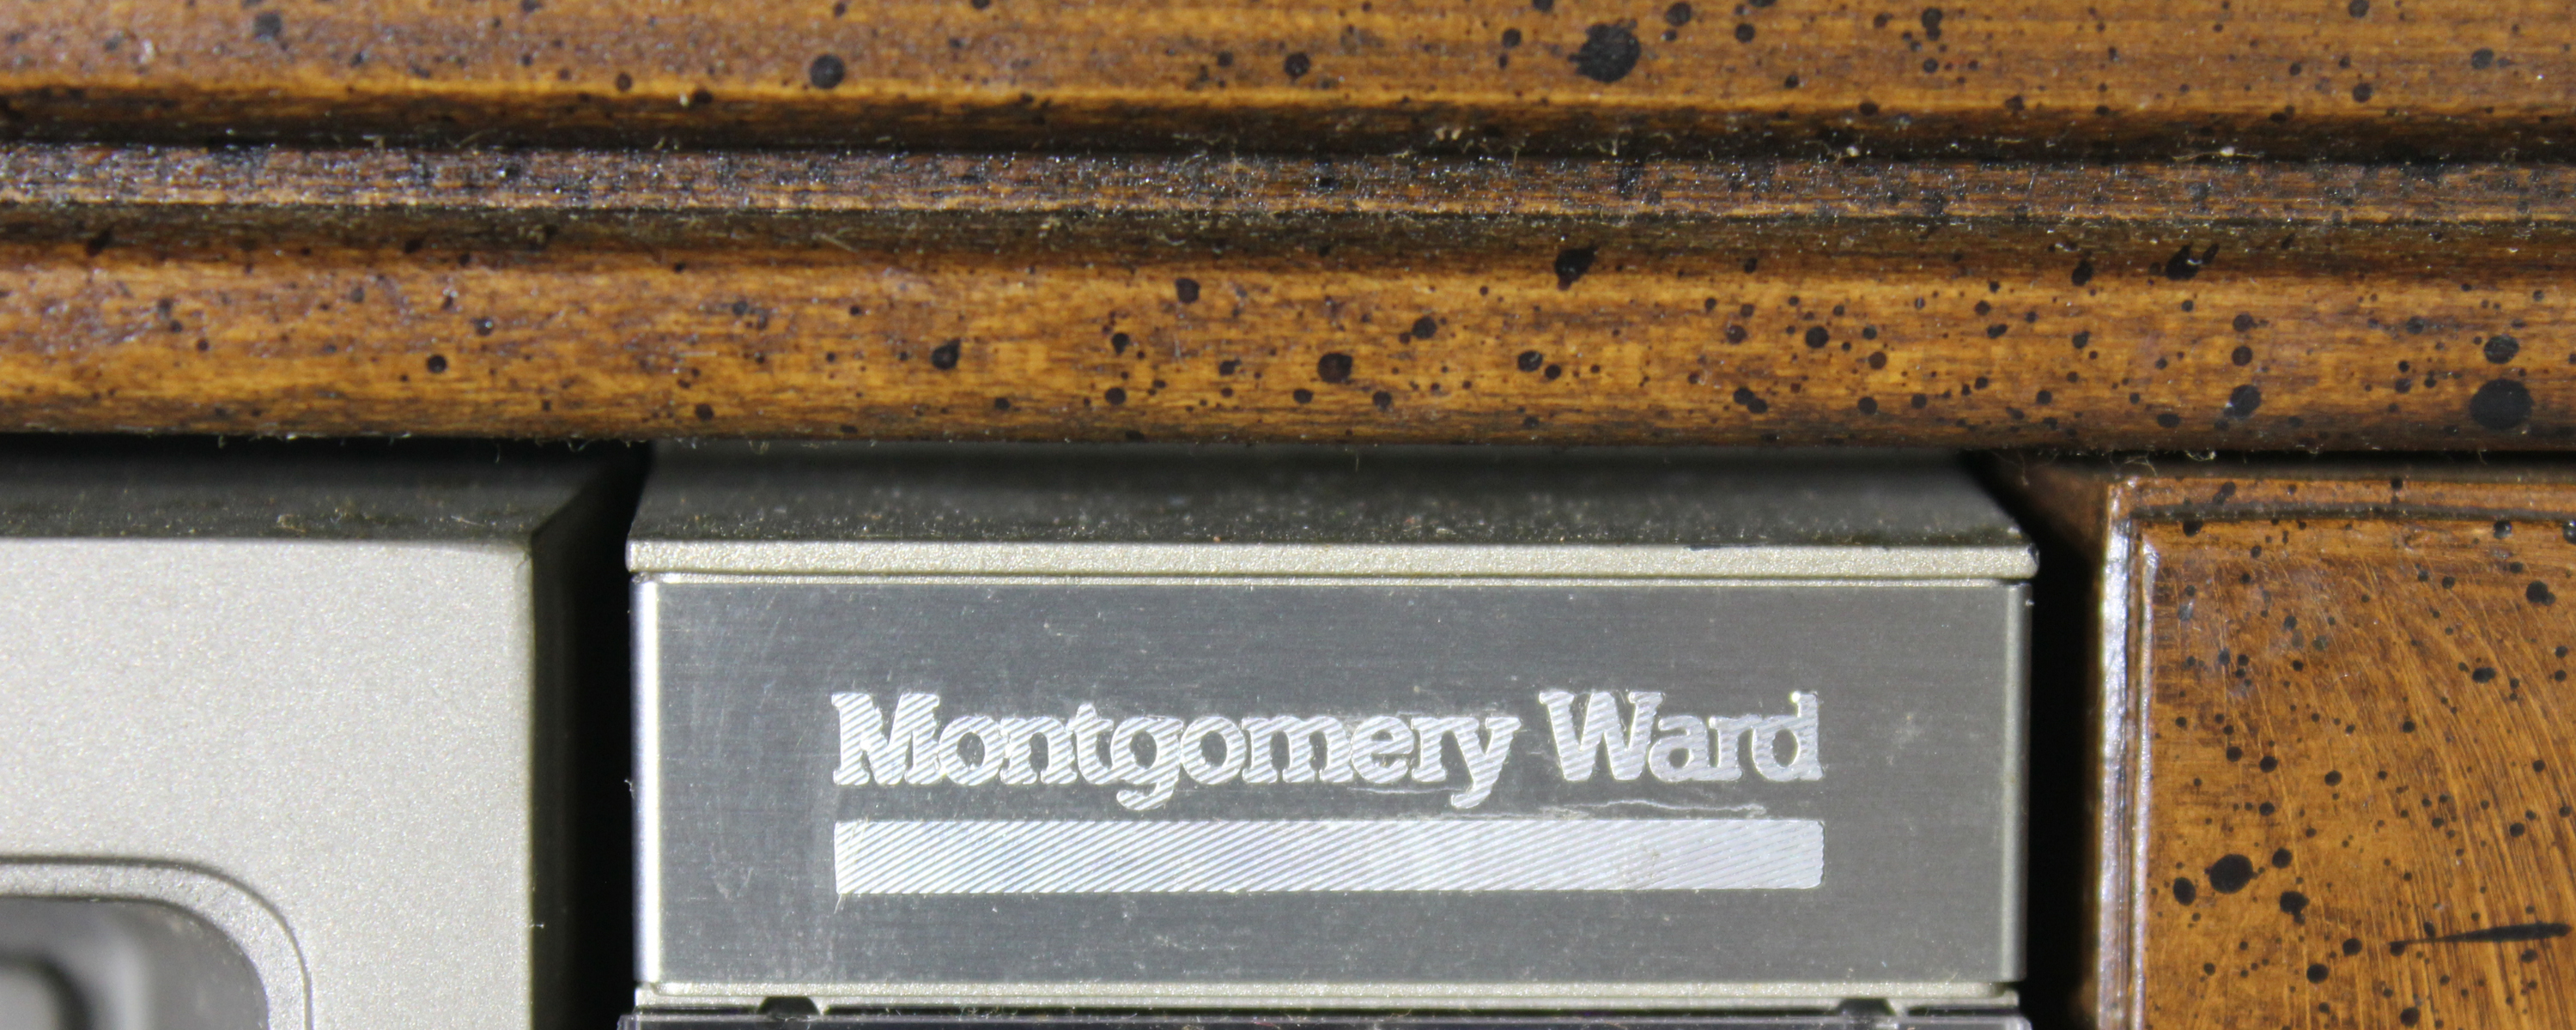 Co-branded for Montgomery Ward